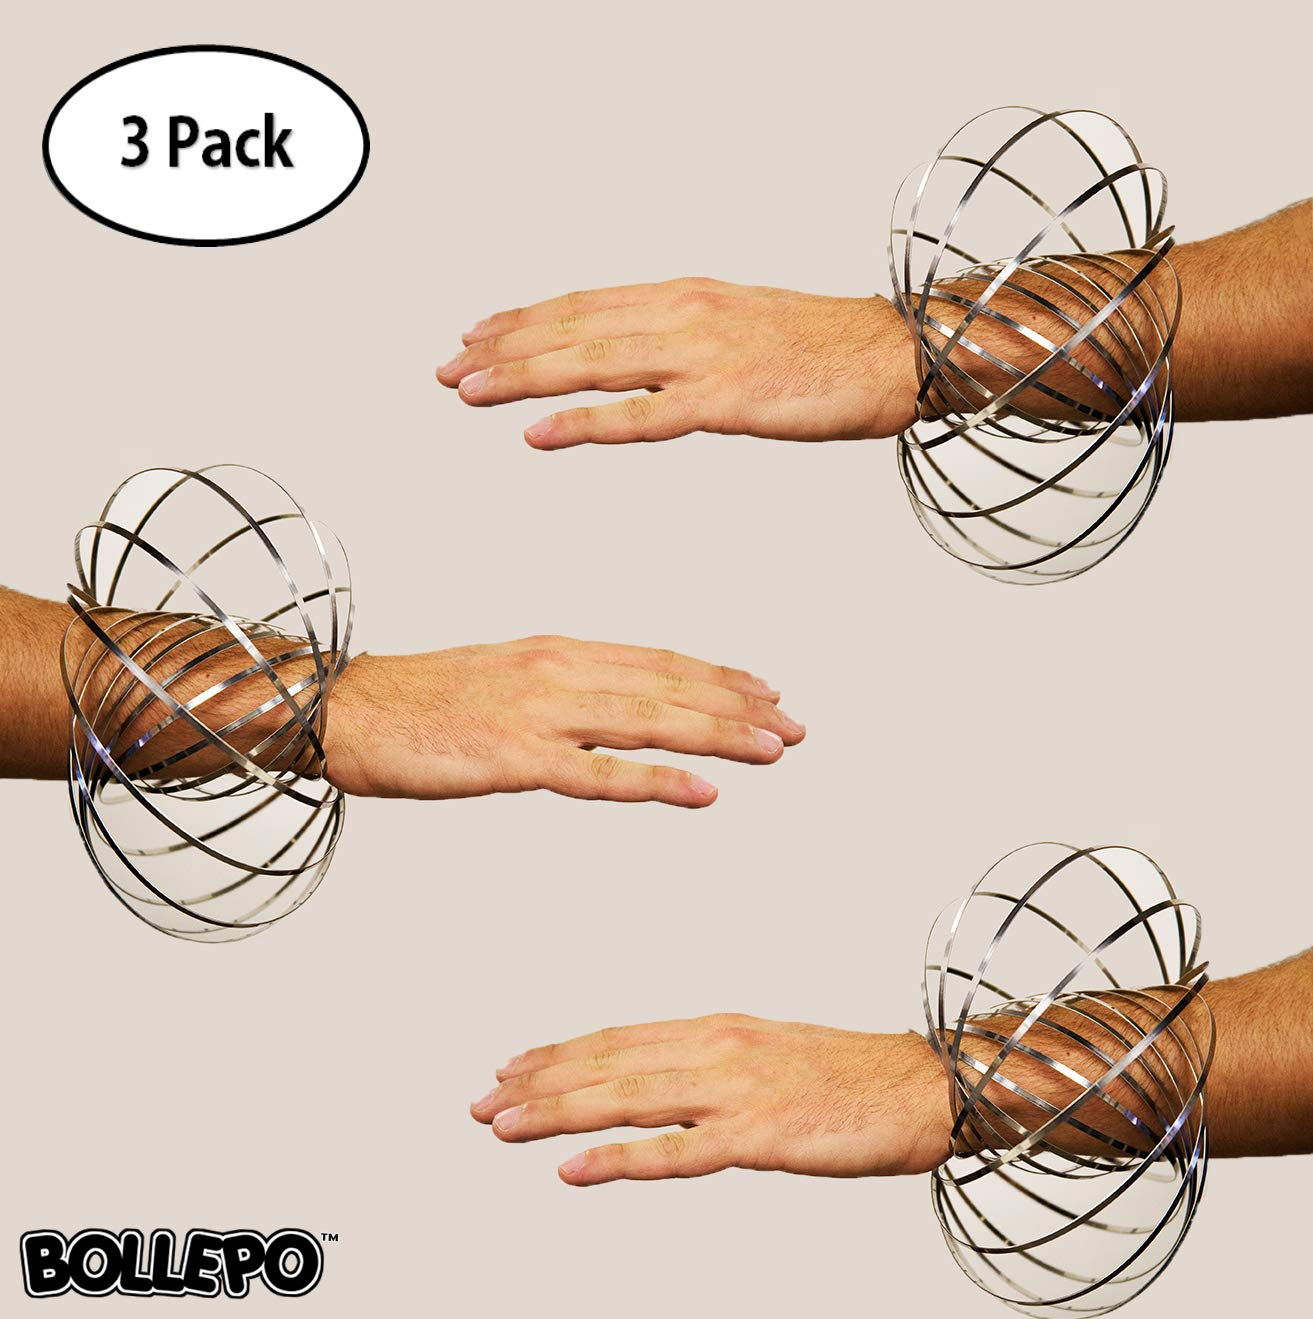 BOLLEPO Flow Ring Kinetic 3D Spring Toy Sculpture Ring Game Toy for Kids Boys and Girl (2 Pack)